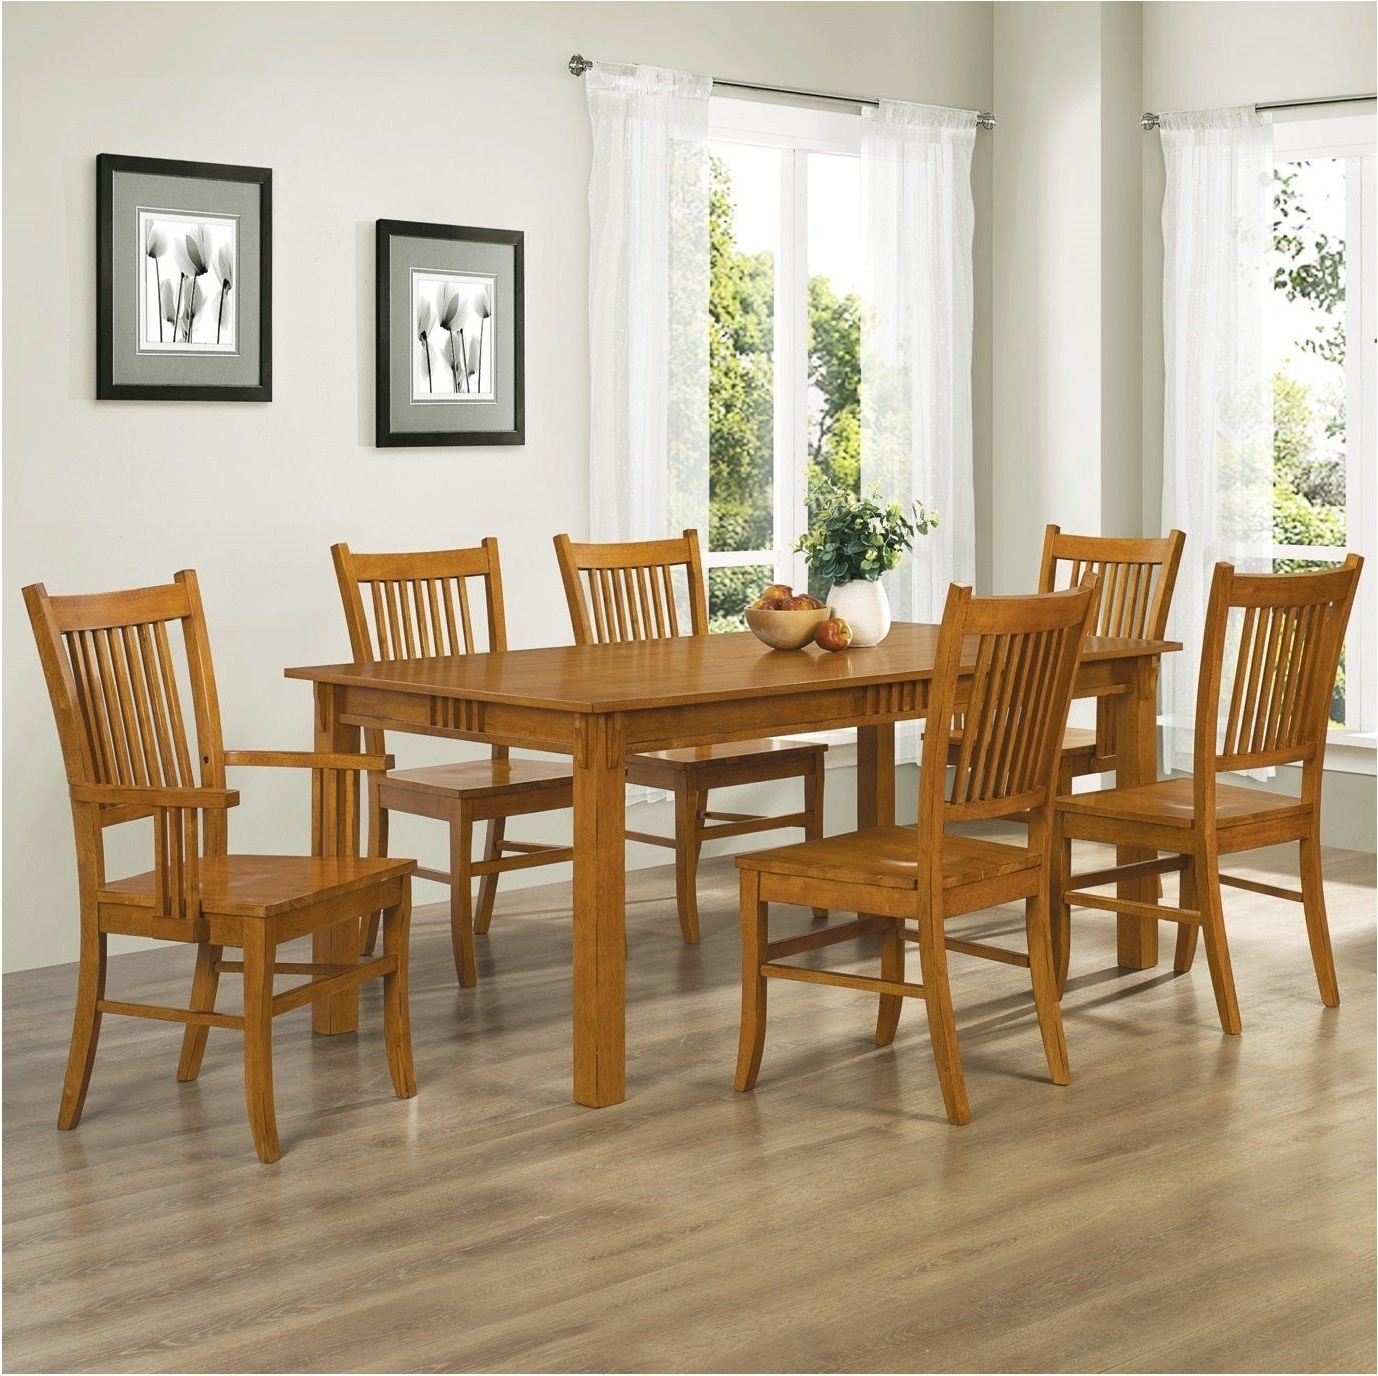 Excellently Elegant Black Dining Sets With 6 Chairs 23 Table And within Most Popular 6 Seat Dining Tables